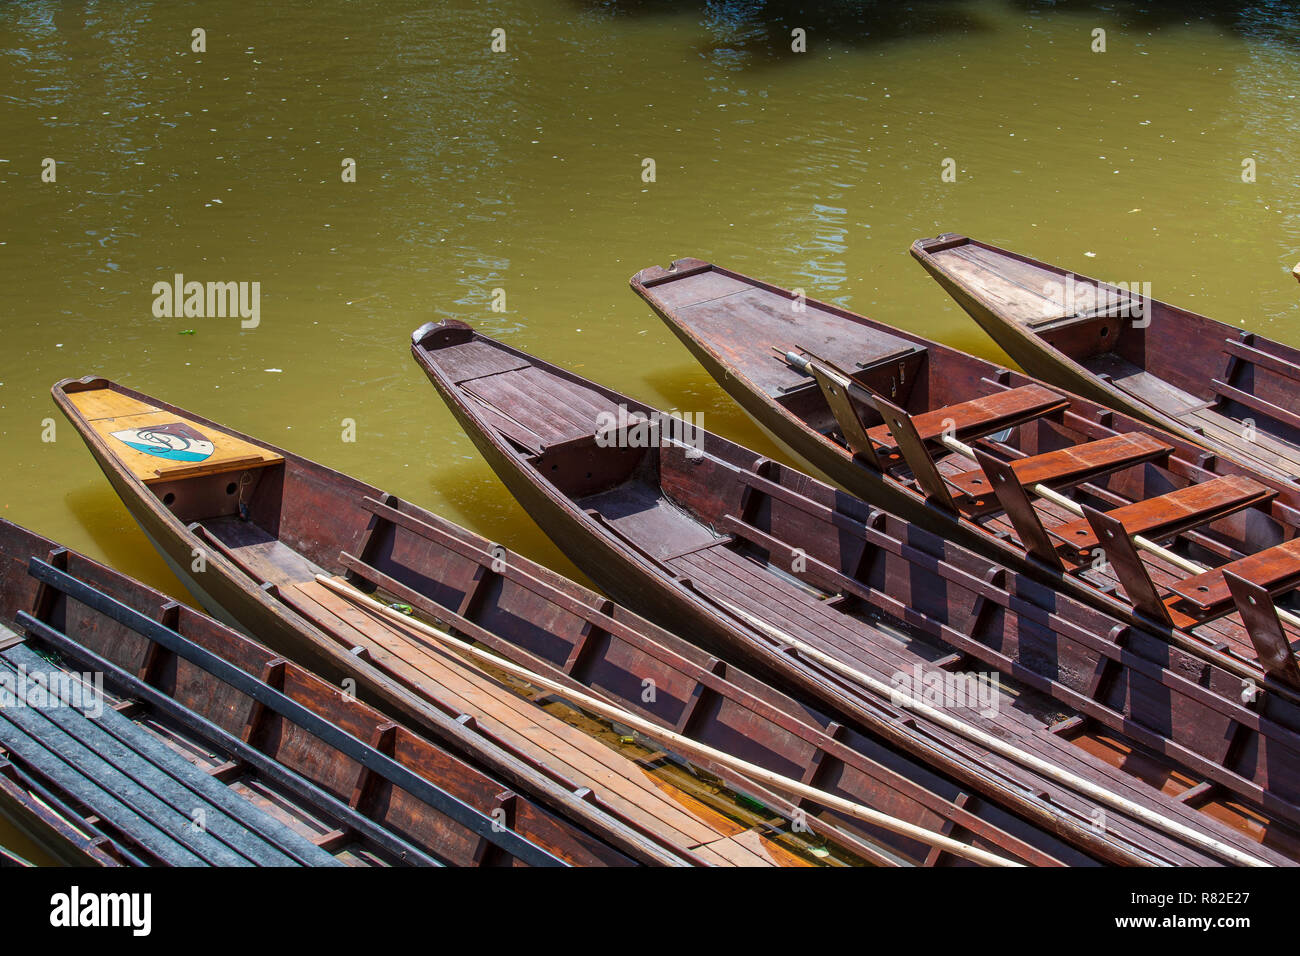 A punt is a flat-bottomed boat with a square-cut bow, designed for use in small rivers or other shallow water - Stock Image